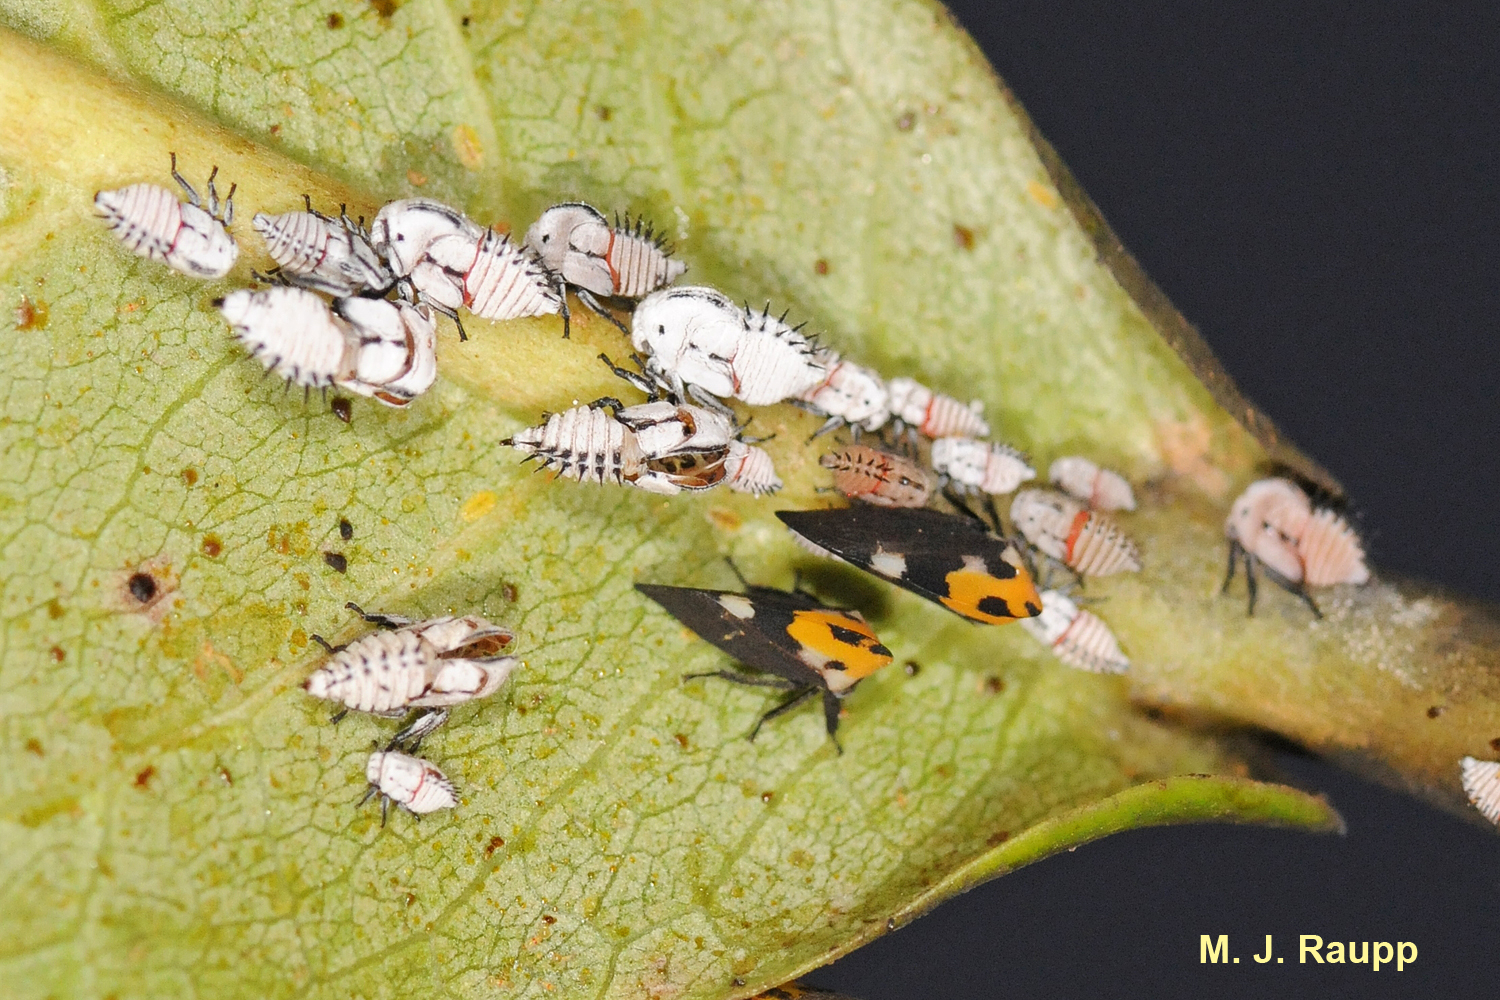 Two adult treehoppers share guard duty watching over little treehopper nymphs.